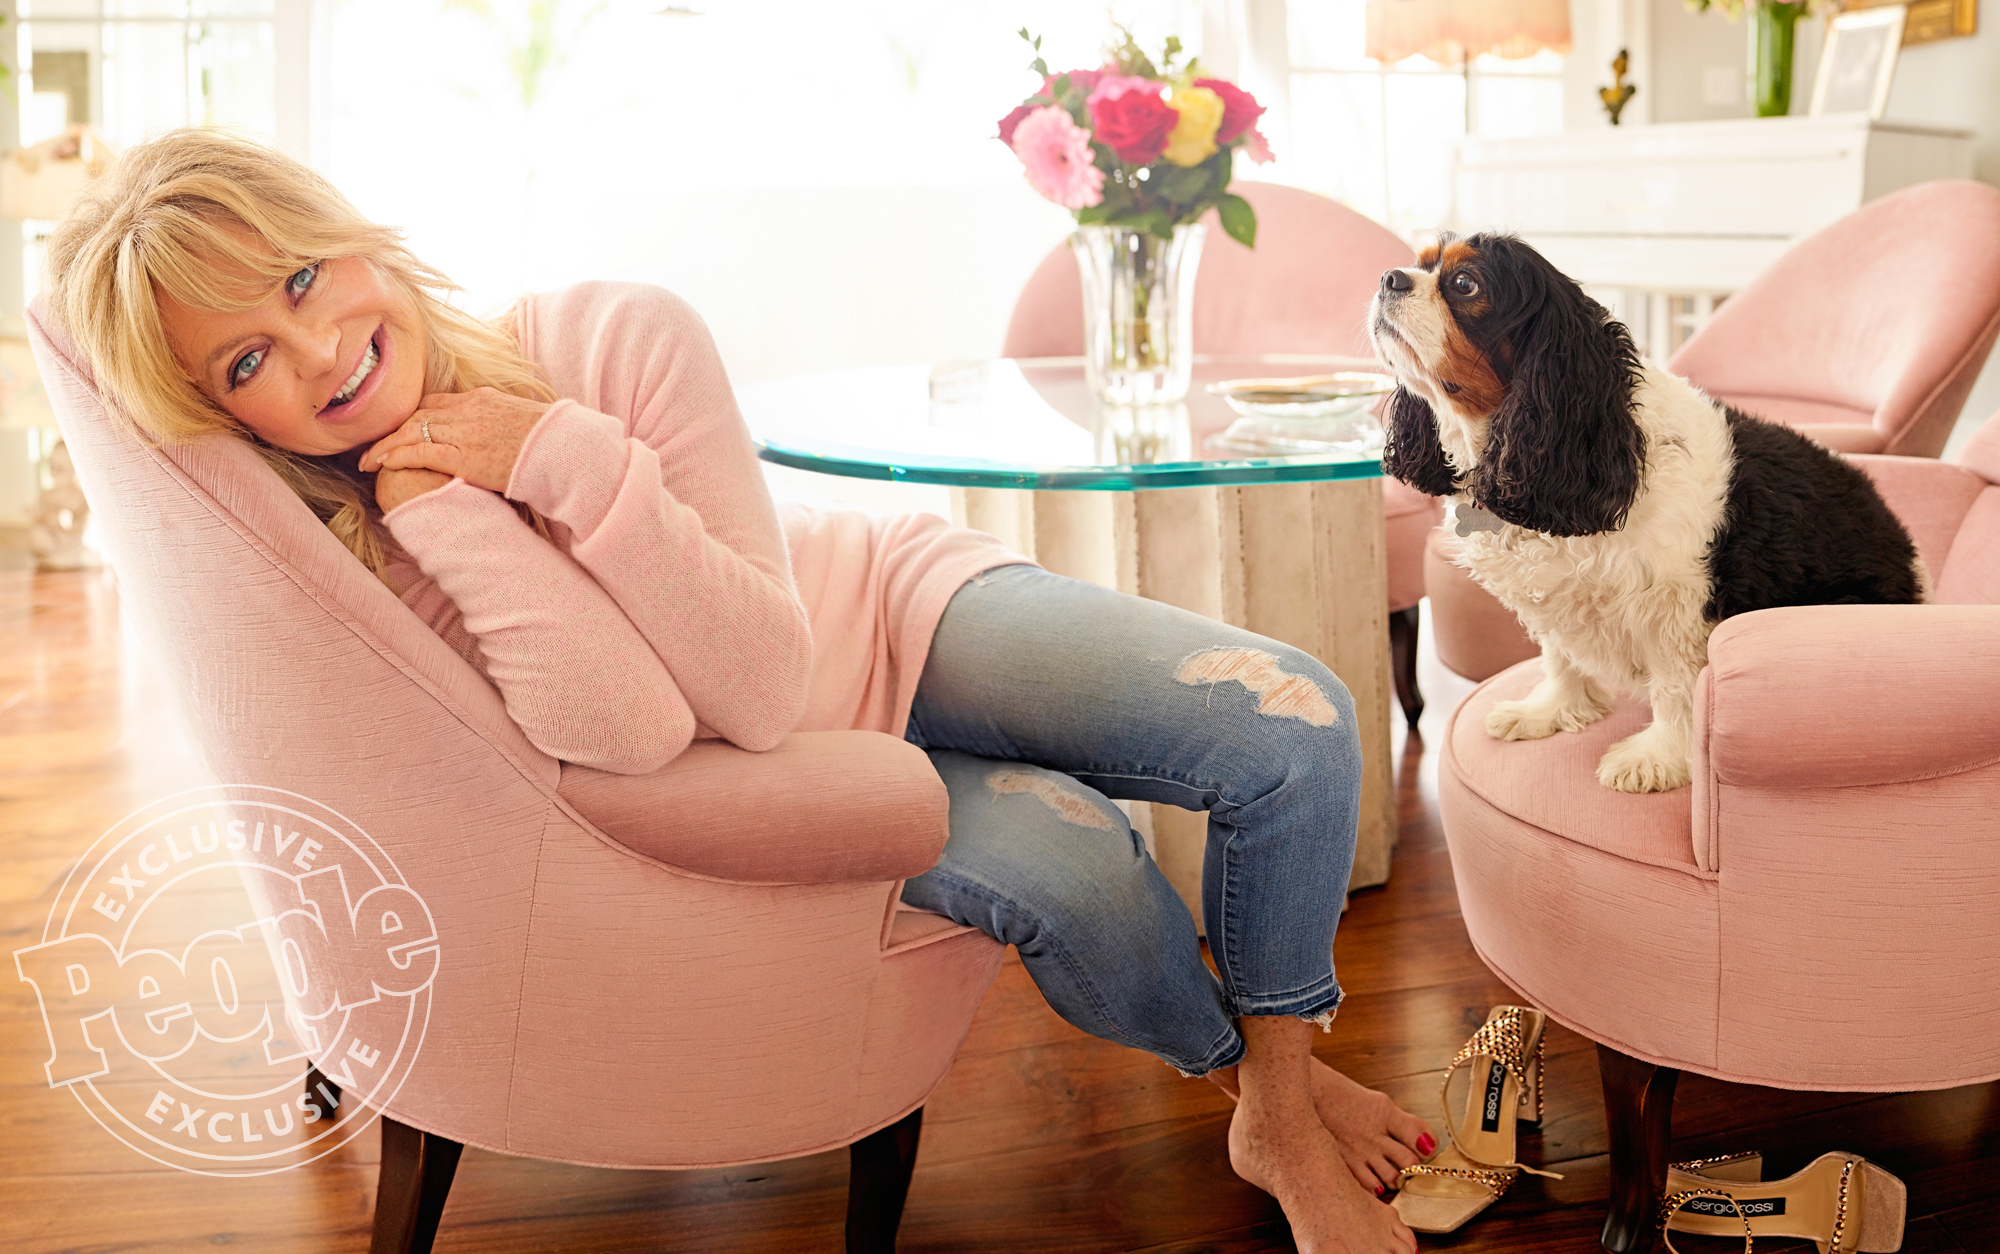 Goldie Hawn photographed with her dog, Rupert, at her house in Los Angeles, CA, on May 5, 2017. Photographer: Peggy Sirota Hair: Riawna Capri/KÈrastase Aura Botanica/Cloutier Remix Makeup: Joey Maalouf/ISH.co/TheOnly.Agency Stylist: Sophie Lopez/TheOnly.Agency Clothing Credits: Pink Sweater - White and Warren Cami ñ Dolce and Gabbana Jeans ñ Mother Denim (Goldieís own) Shoes ñ Sergio Rossi Earrings Ippolita